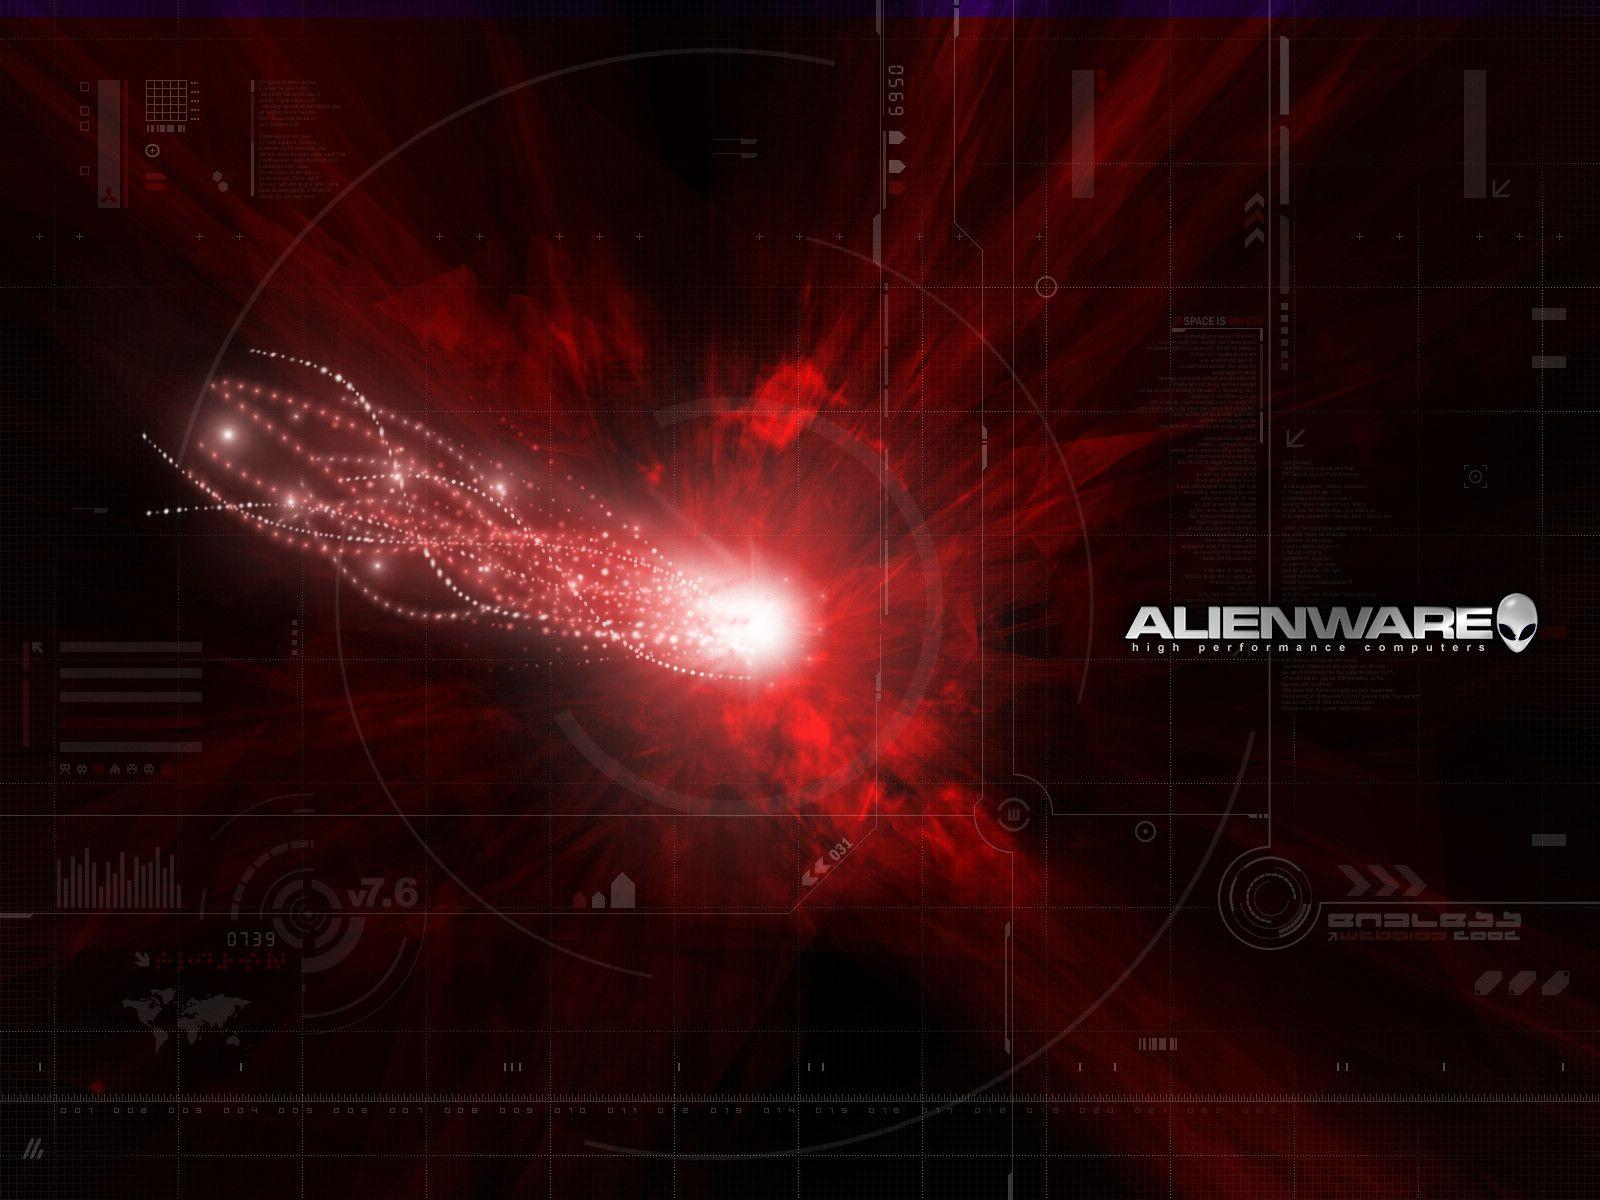 alienware wallpapers red - photo #9